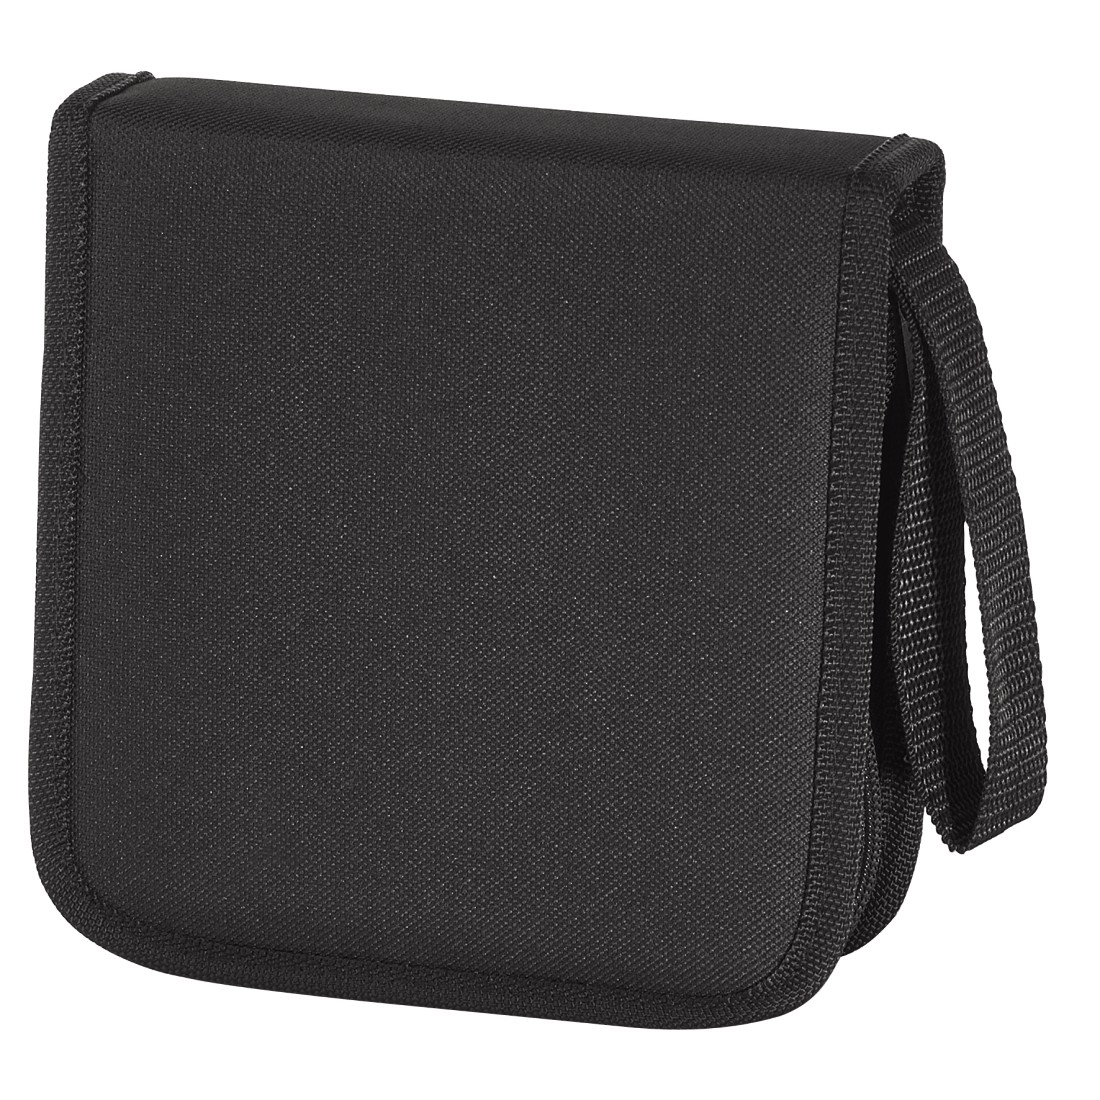 abx High-Res Image - Hama, CD-WALLET 32 CD czarny